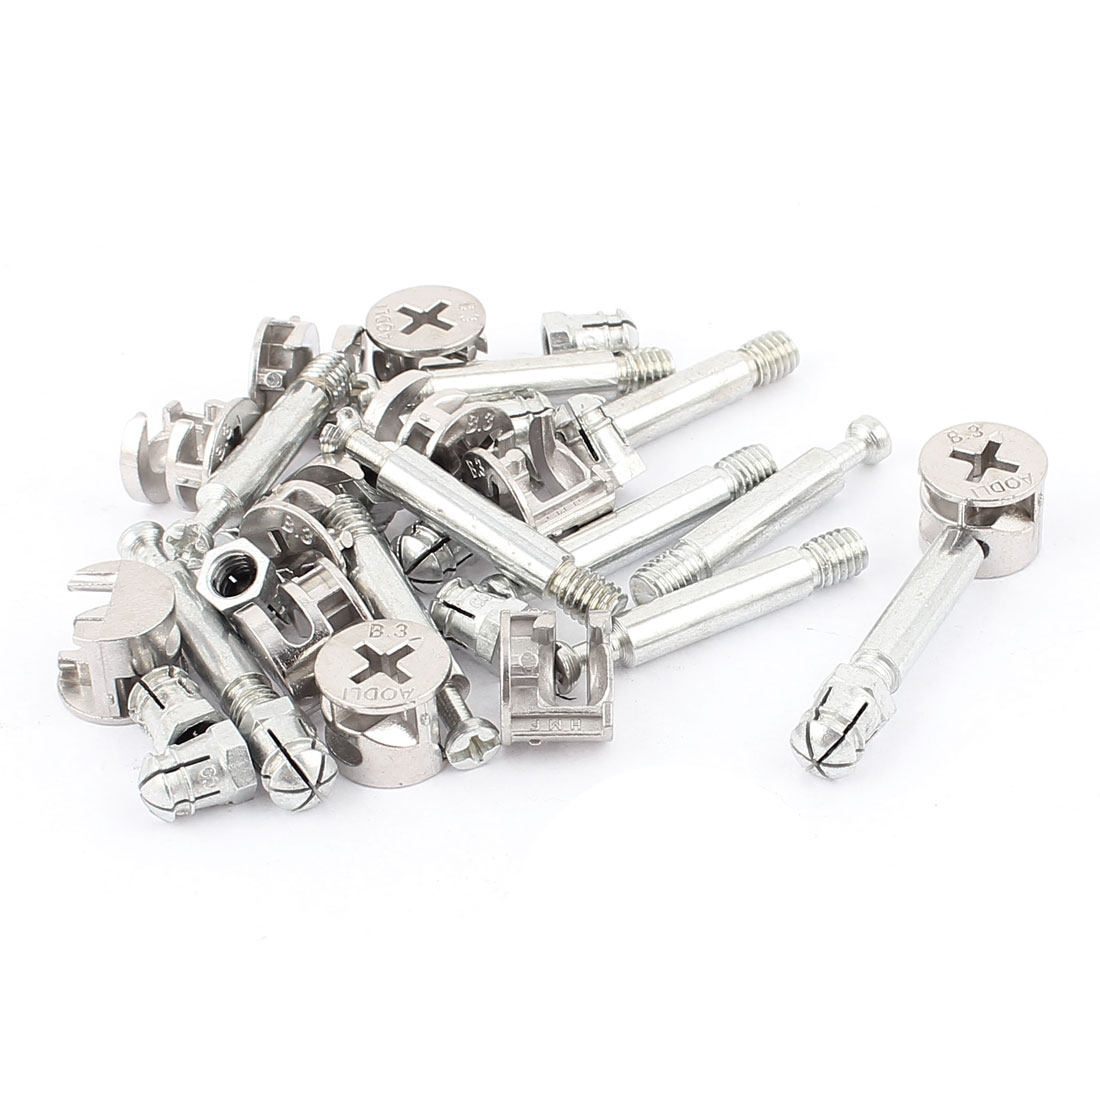 Knock Down Furniture Cam Lock Fitting Dowel Assembly 11 Sets